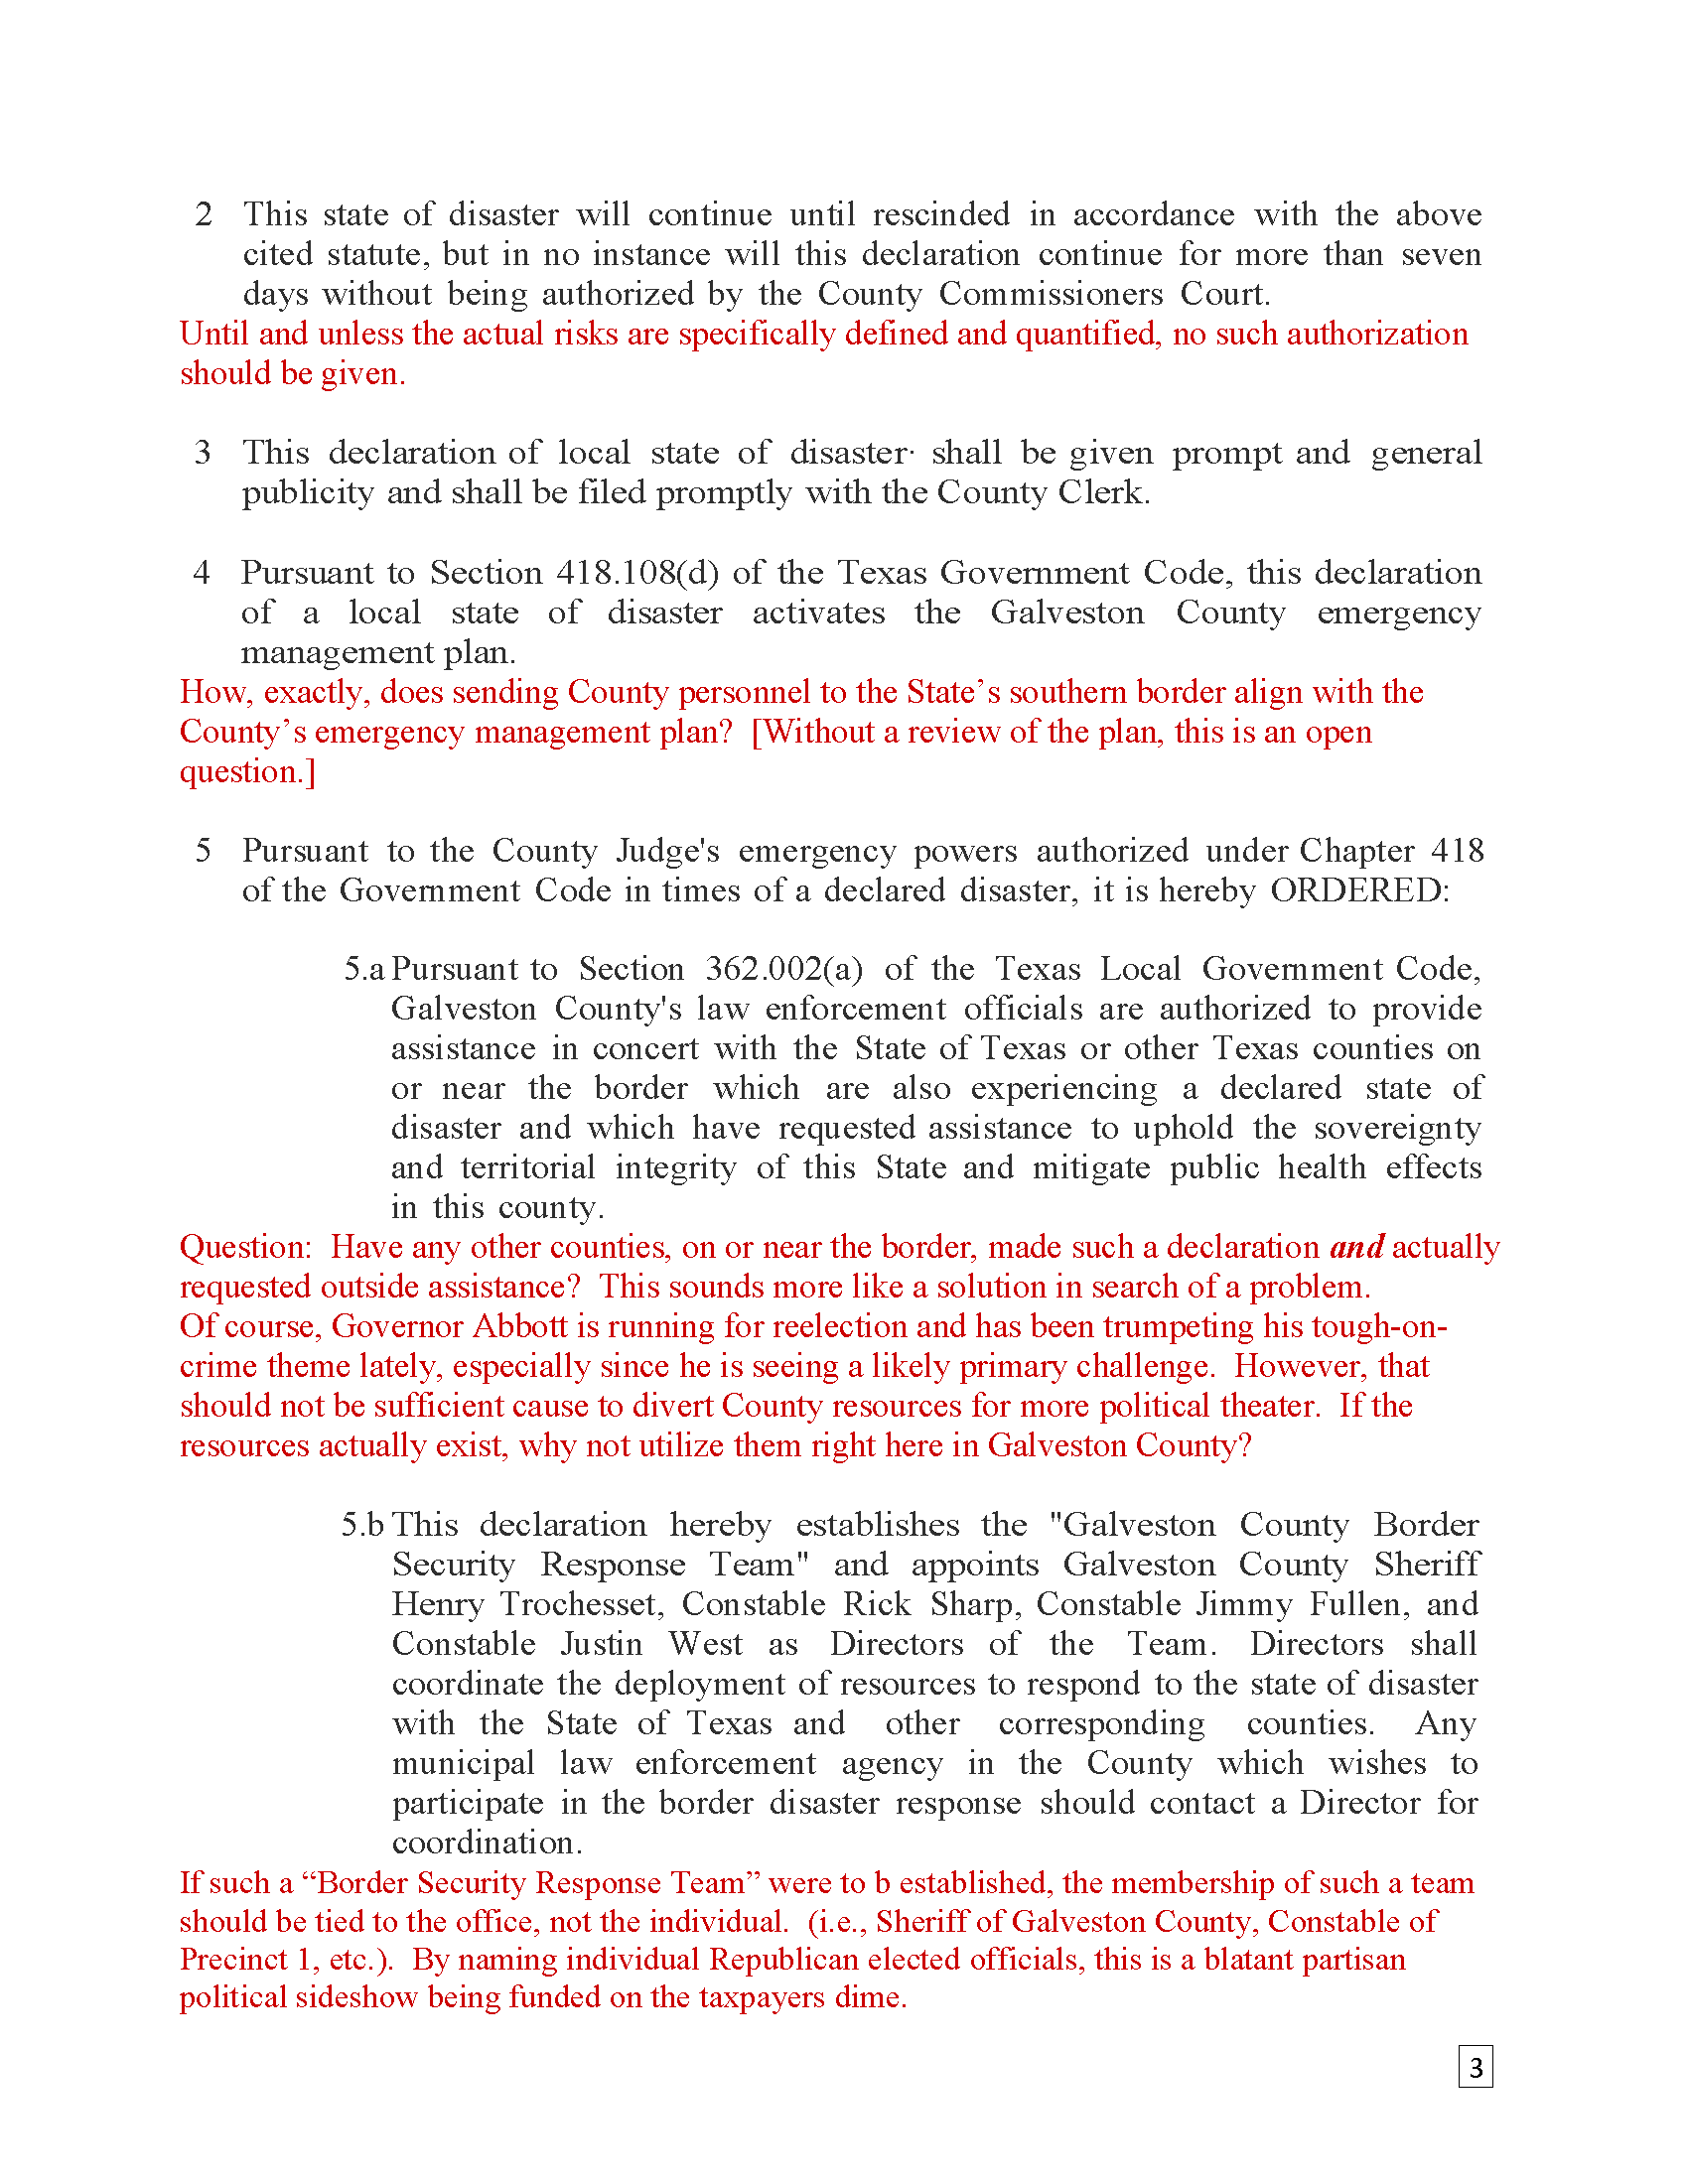 2021_06_29_Declaration_of_Local_State_of_Disaster_annotated_Page_3.png